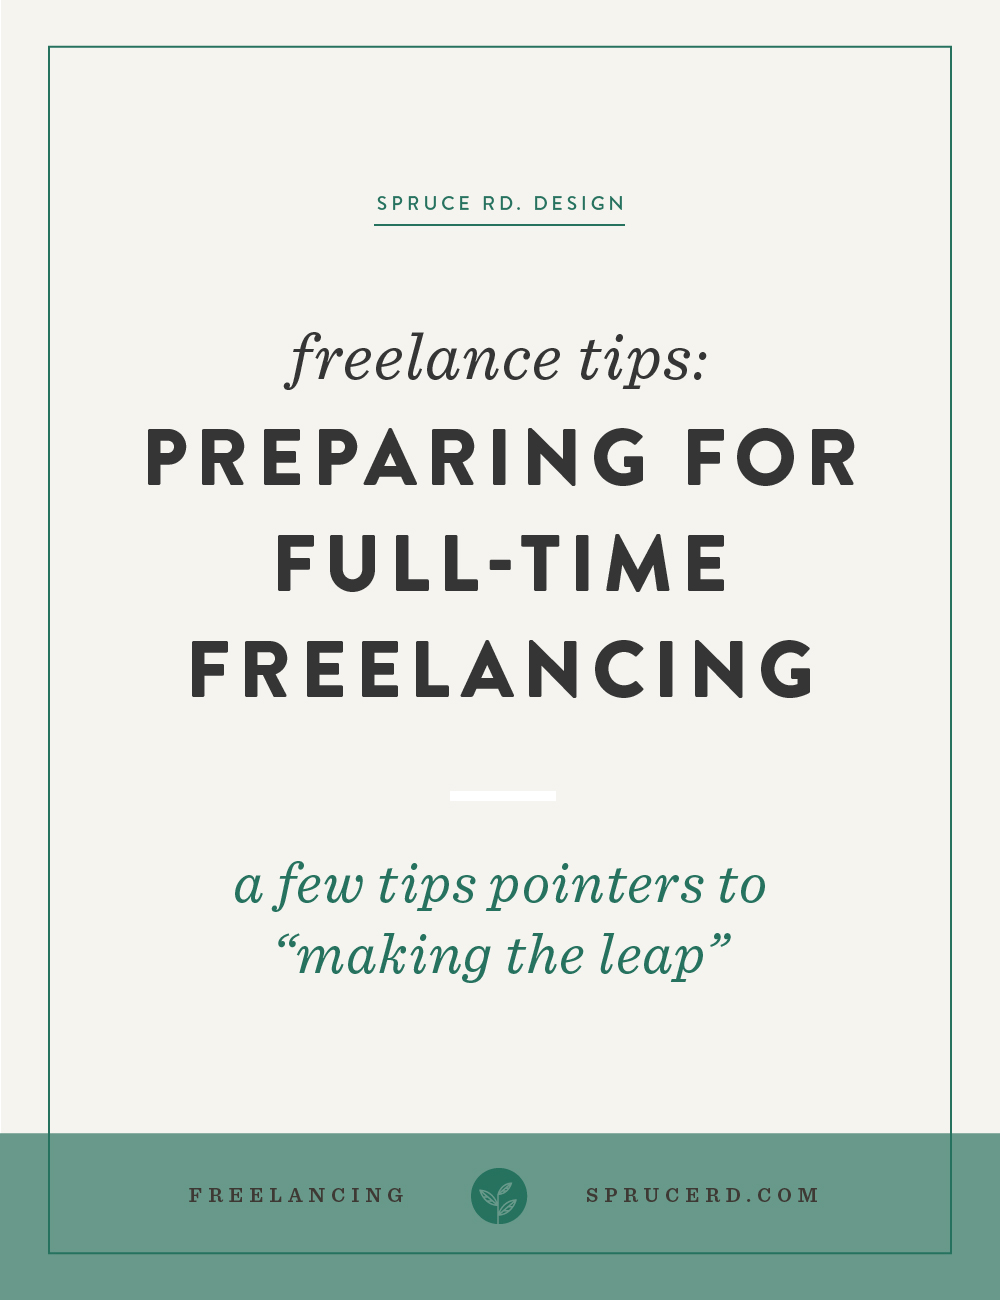 """Preparing for full-time freelancing 